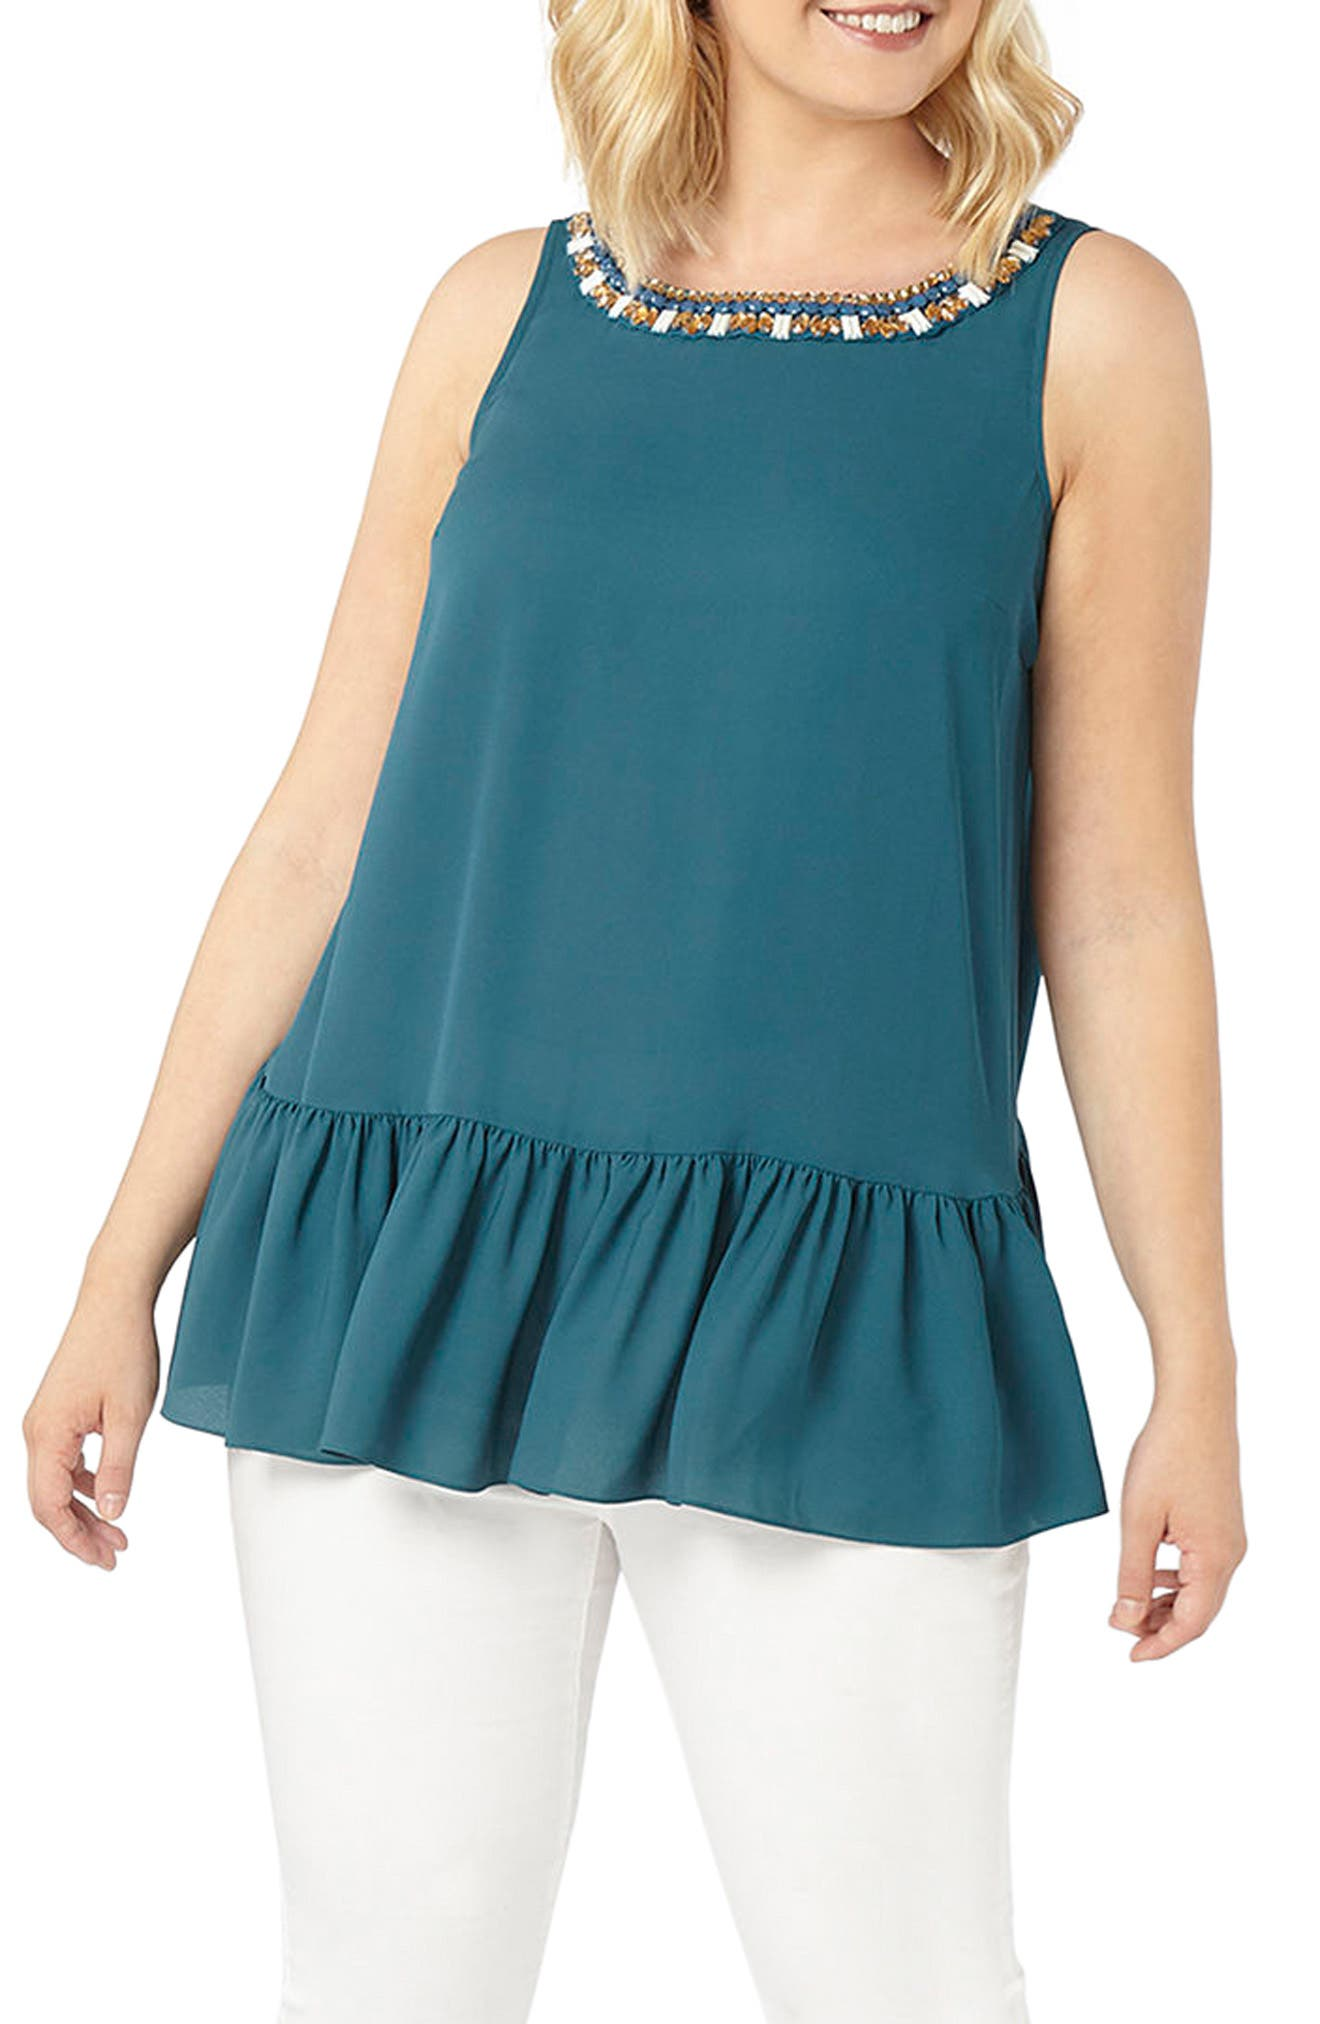 Main Image - Evans Embroidered Neck Peplum Top (Plus Size)